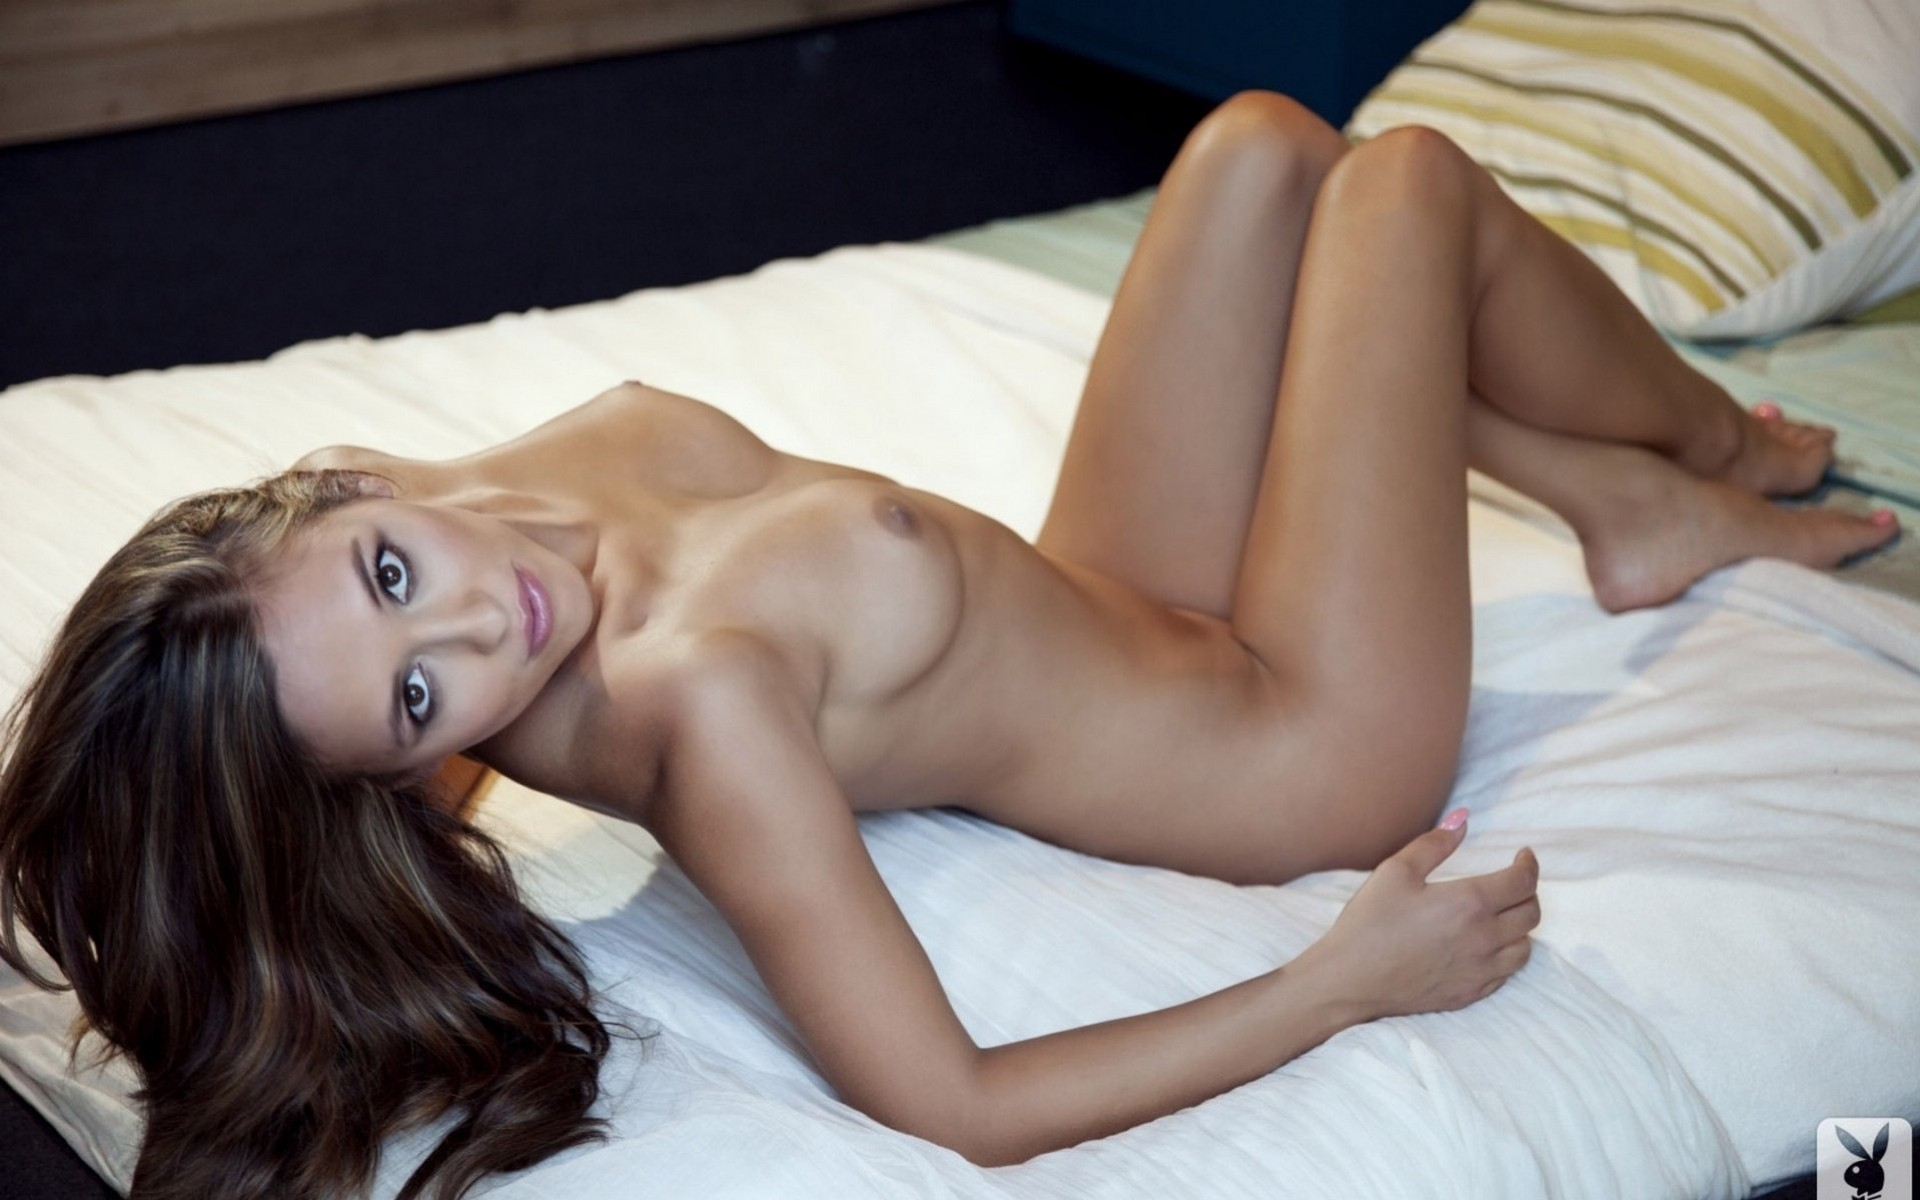 Lady naked photo in bed pollard